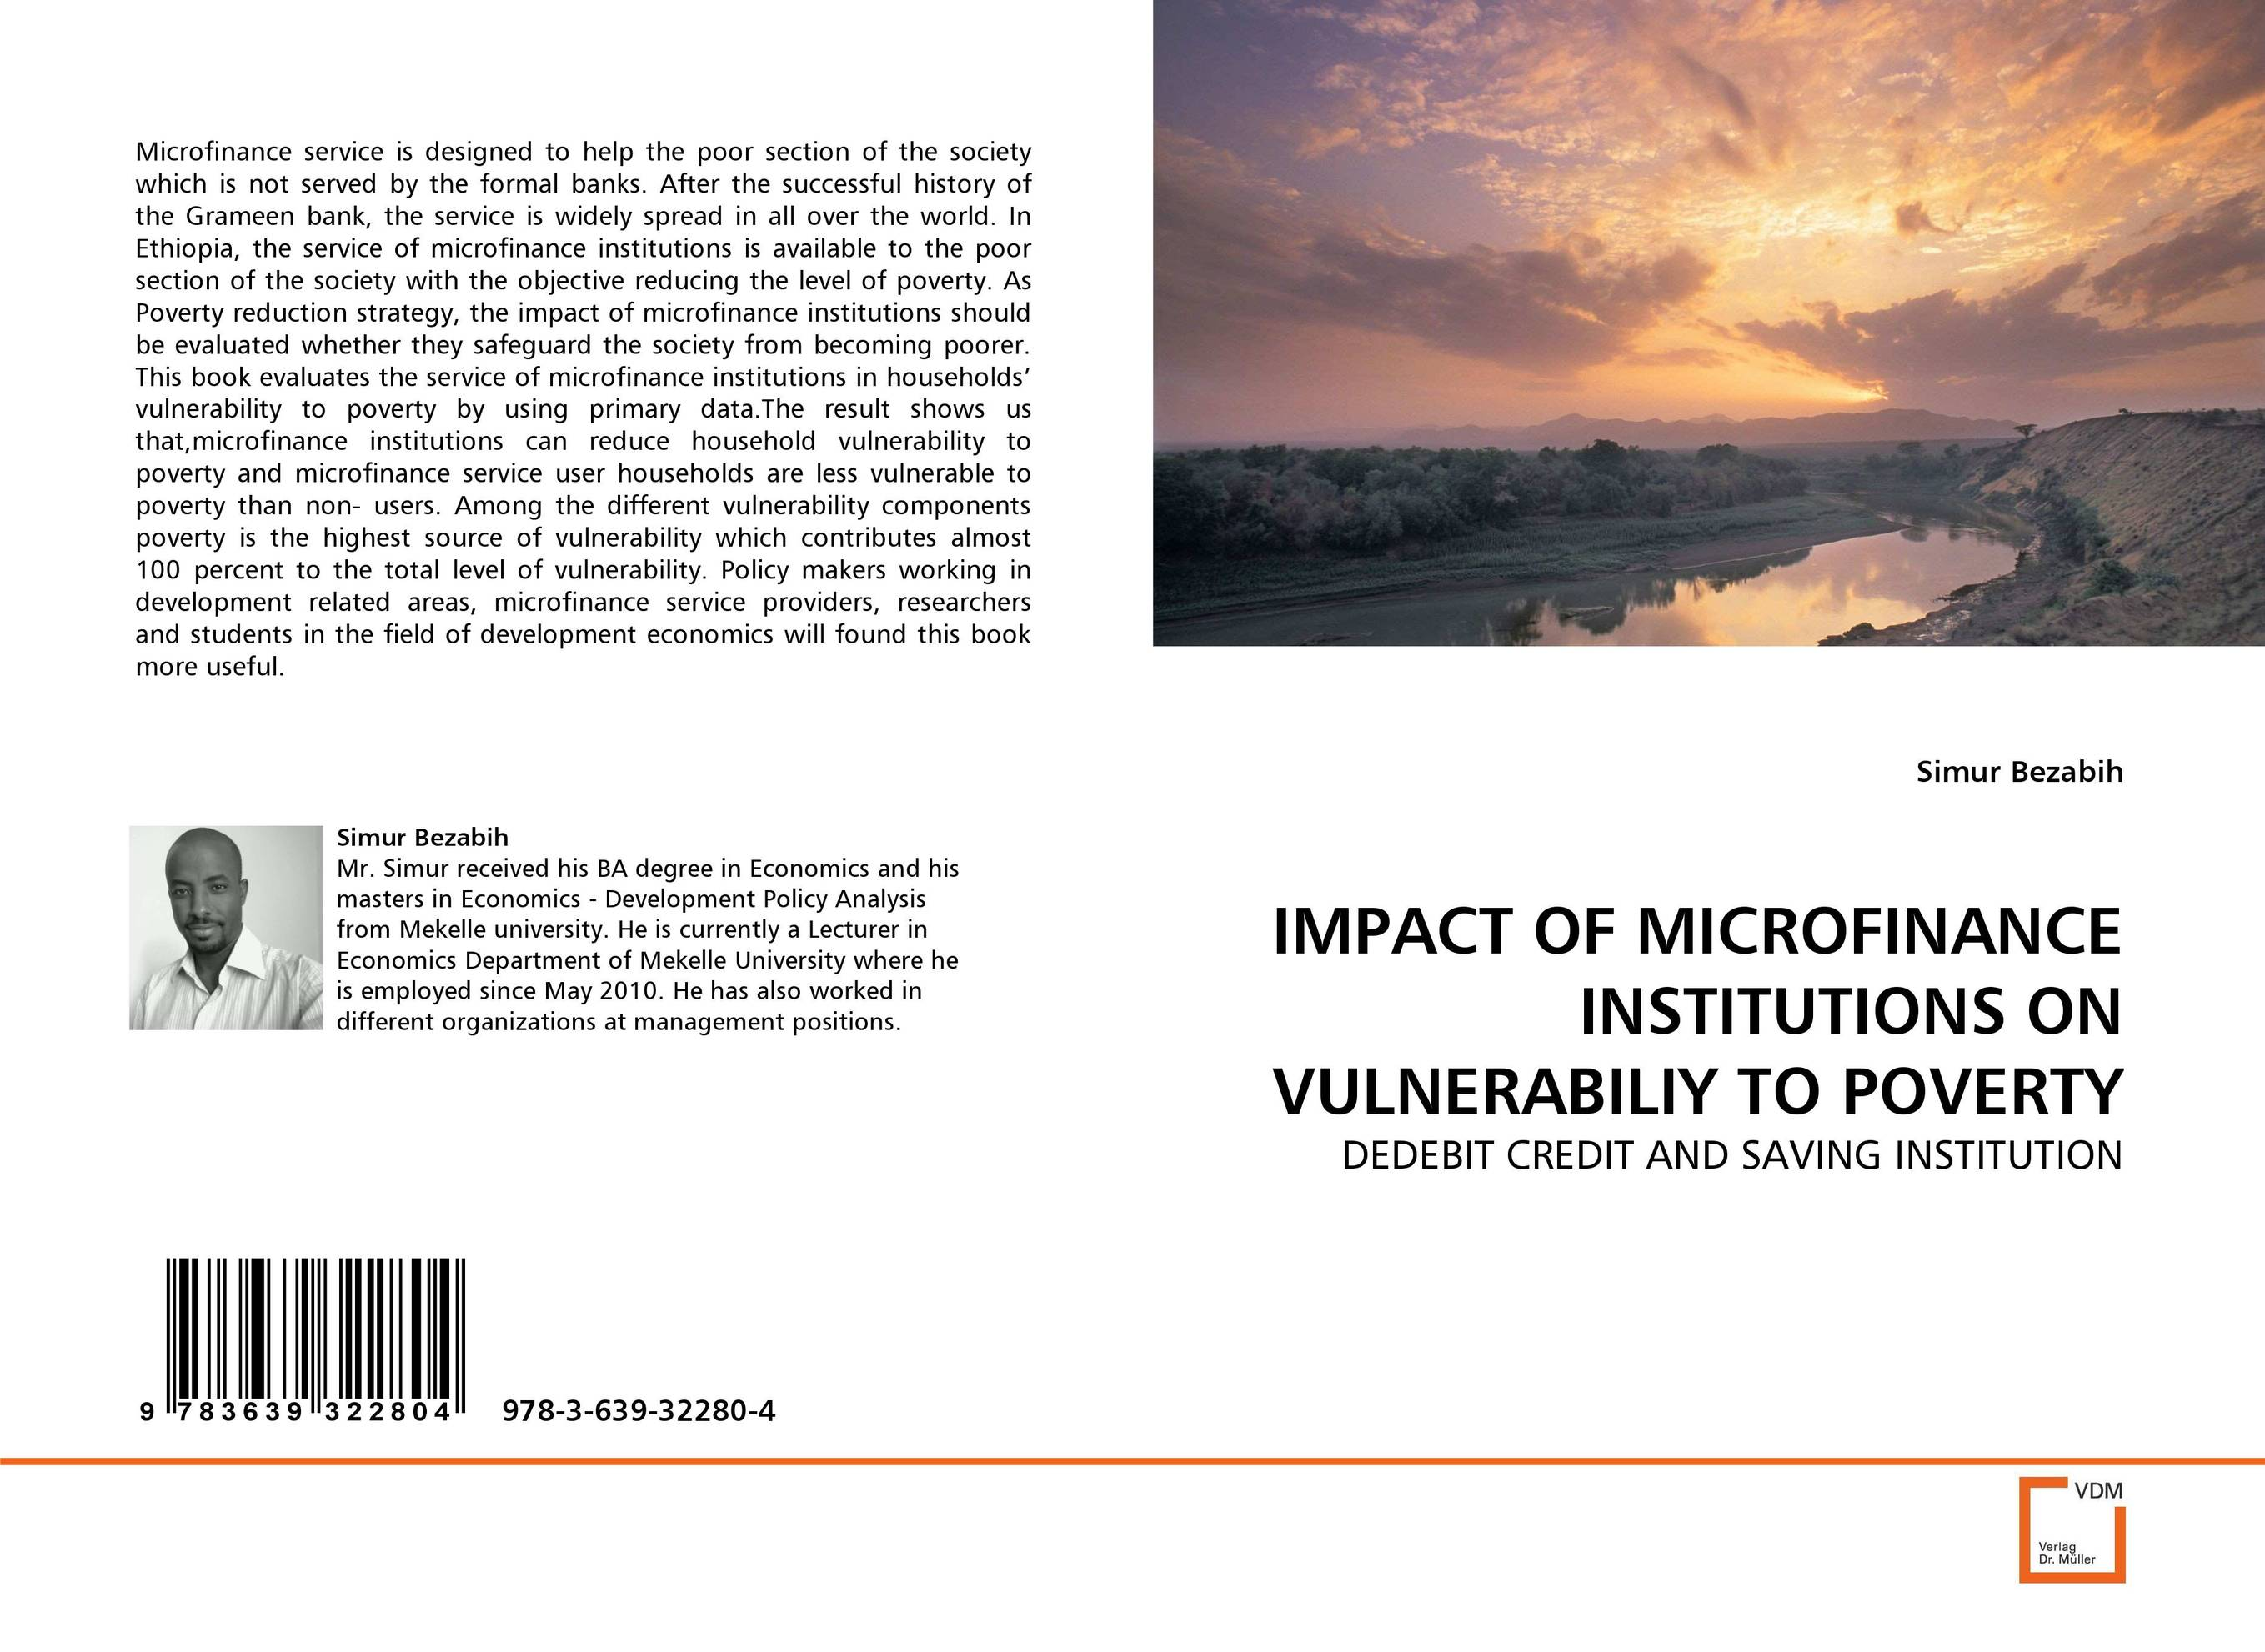 IMPACT OF MICROFINANCE INSTITUTIONS ON VULNERABILIY TO POVERTY beatriz a de aghion the economics of microfinance